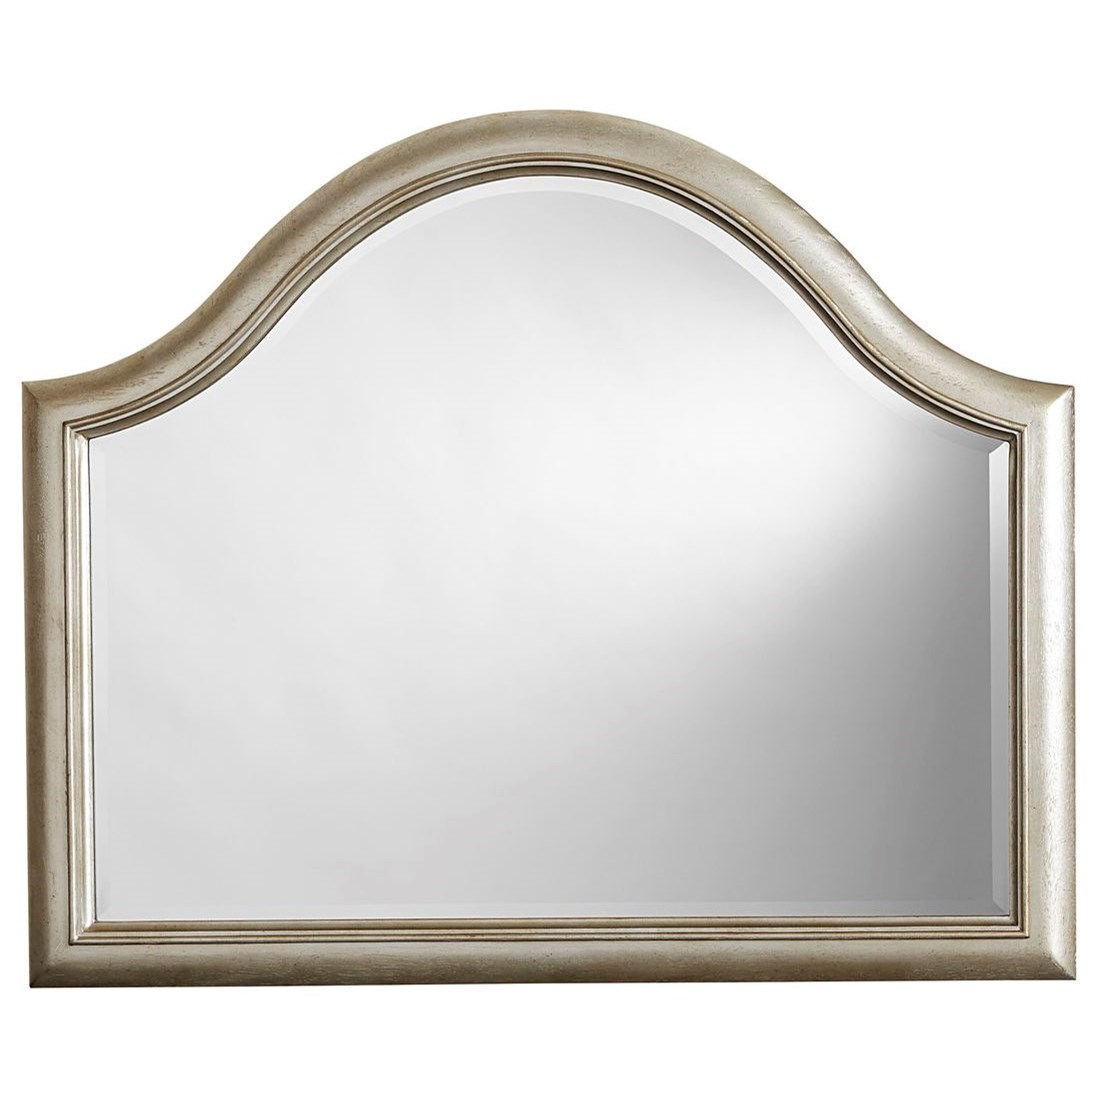 Starlite Arched Mirror by A.R.T. Furniture Inc at Home Collections Furniture